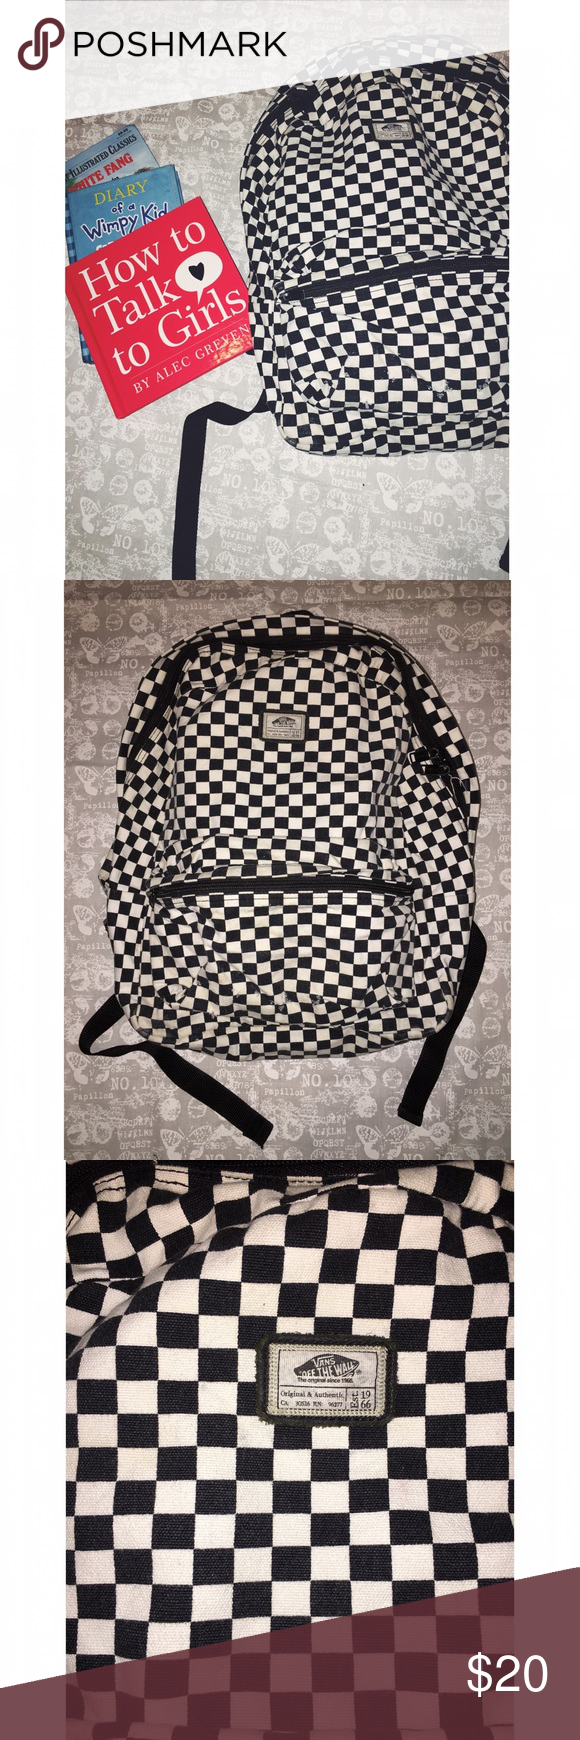 Vans Off the Wall Checked Backpack Preloved, black & white checked checked backpack. Scuffs on the outer pocket & signs of use on the inside. Zippers work fine, typical use more pics upon request. No trades. Vans Bags Backpacks